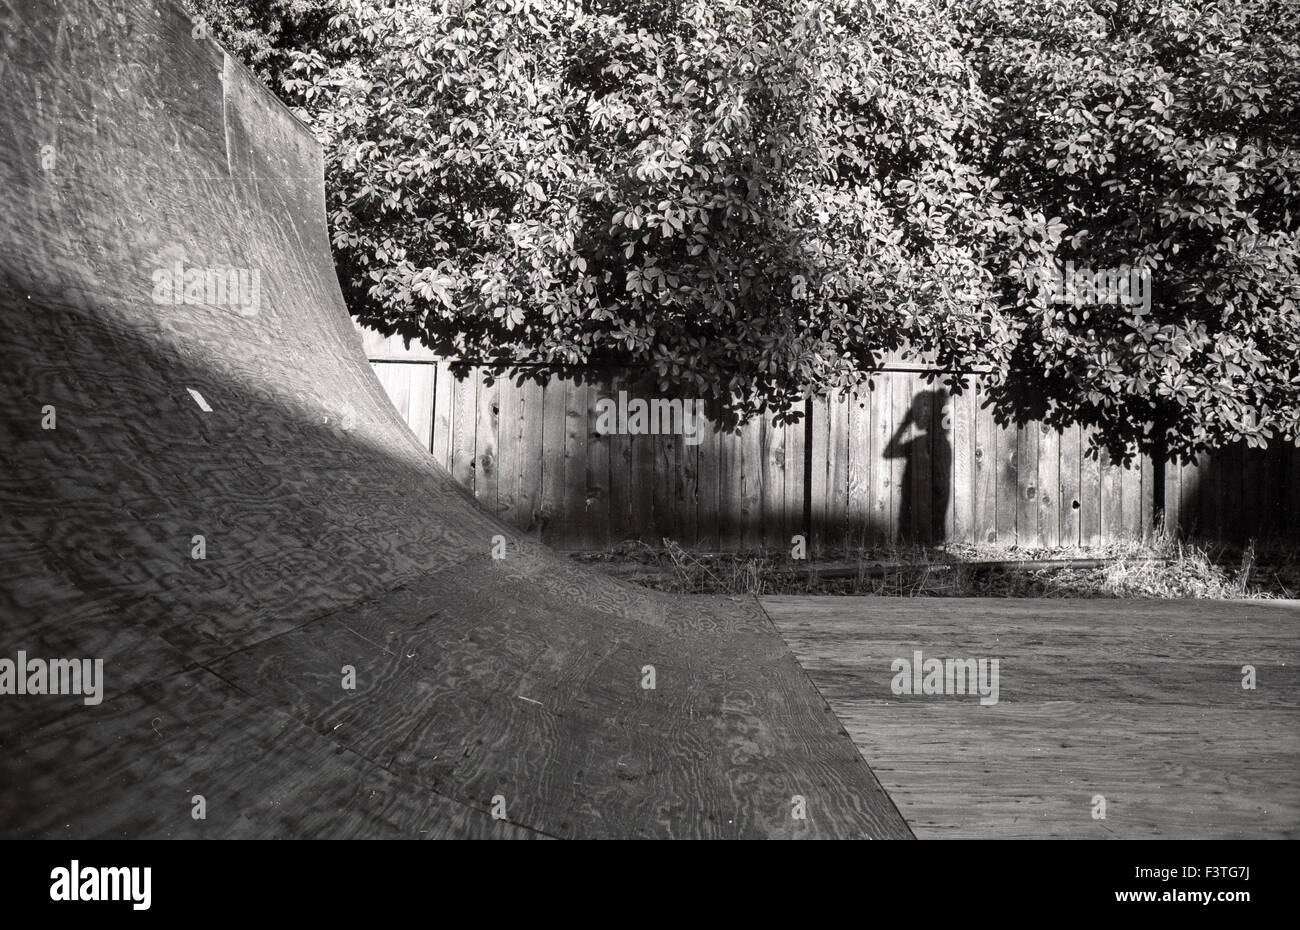 skateboarding half pipe california backyard 1980s stock photo